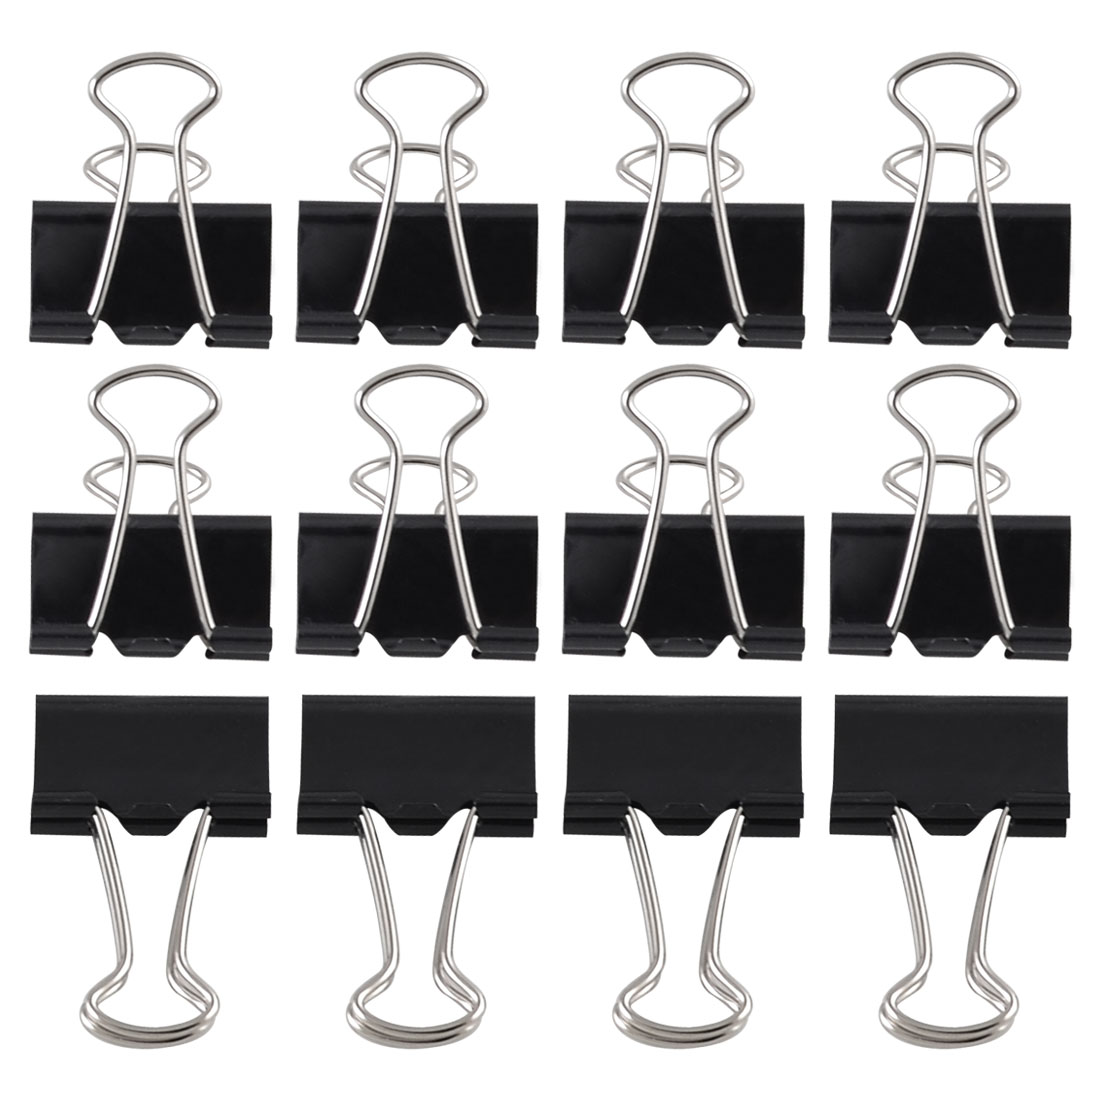 12 Pcs Office Files Documents Metal Black Binder Clips 25mm Width